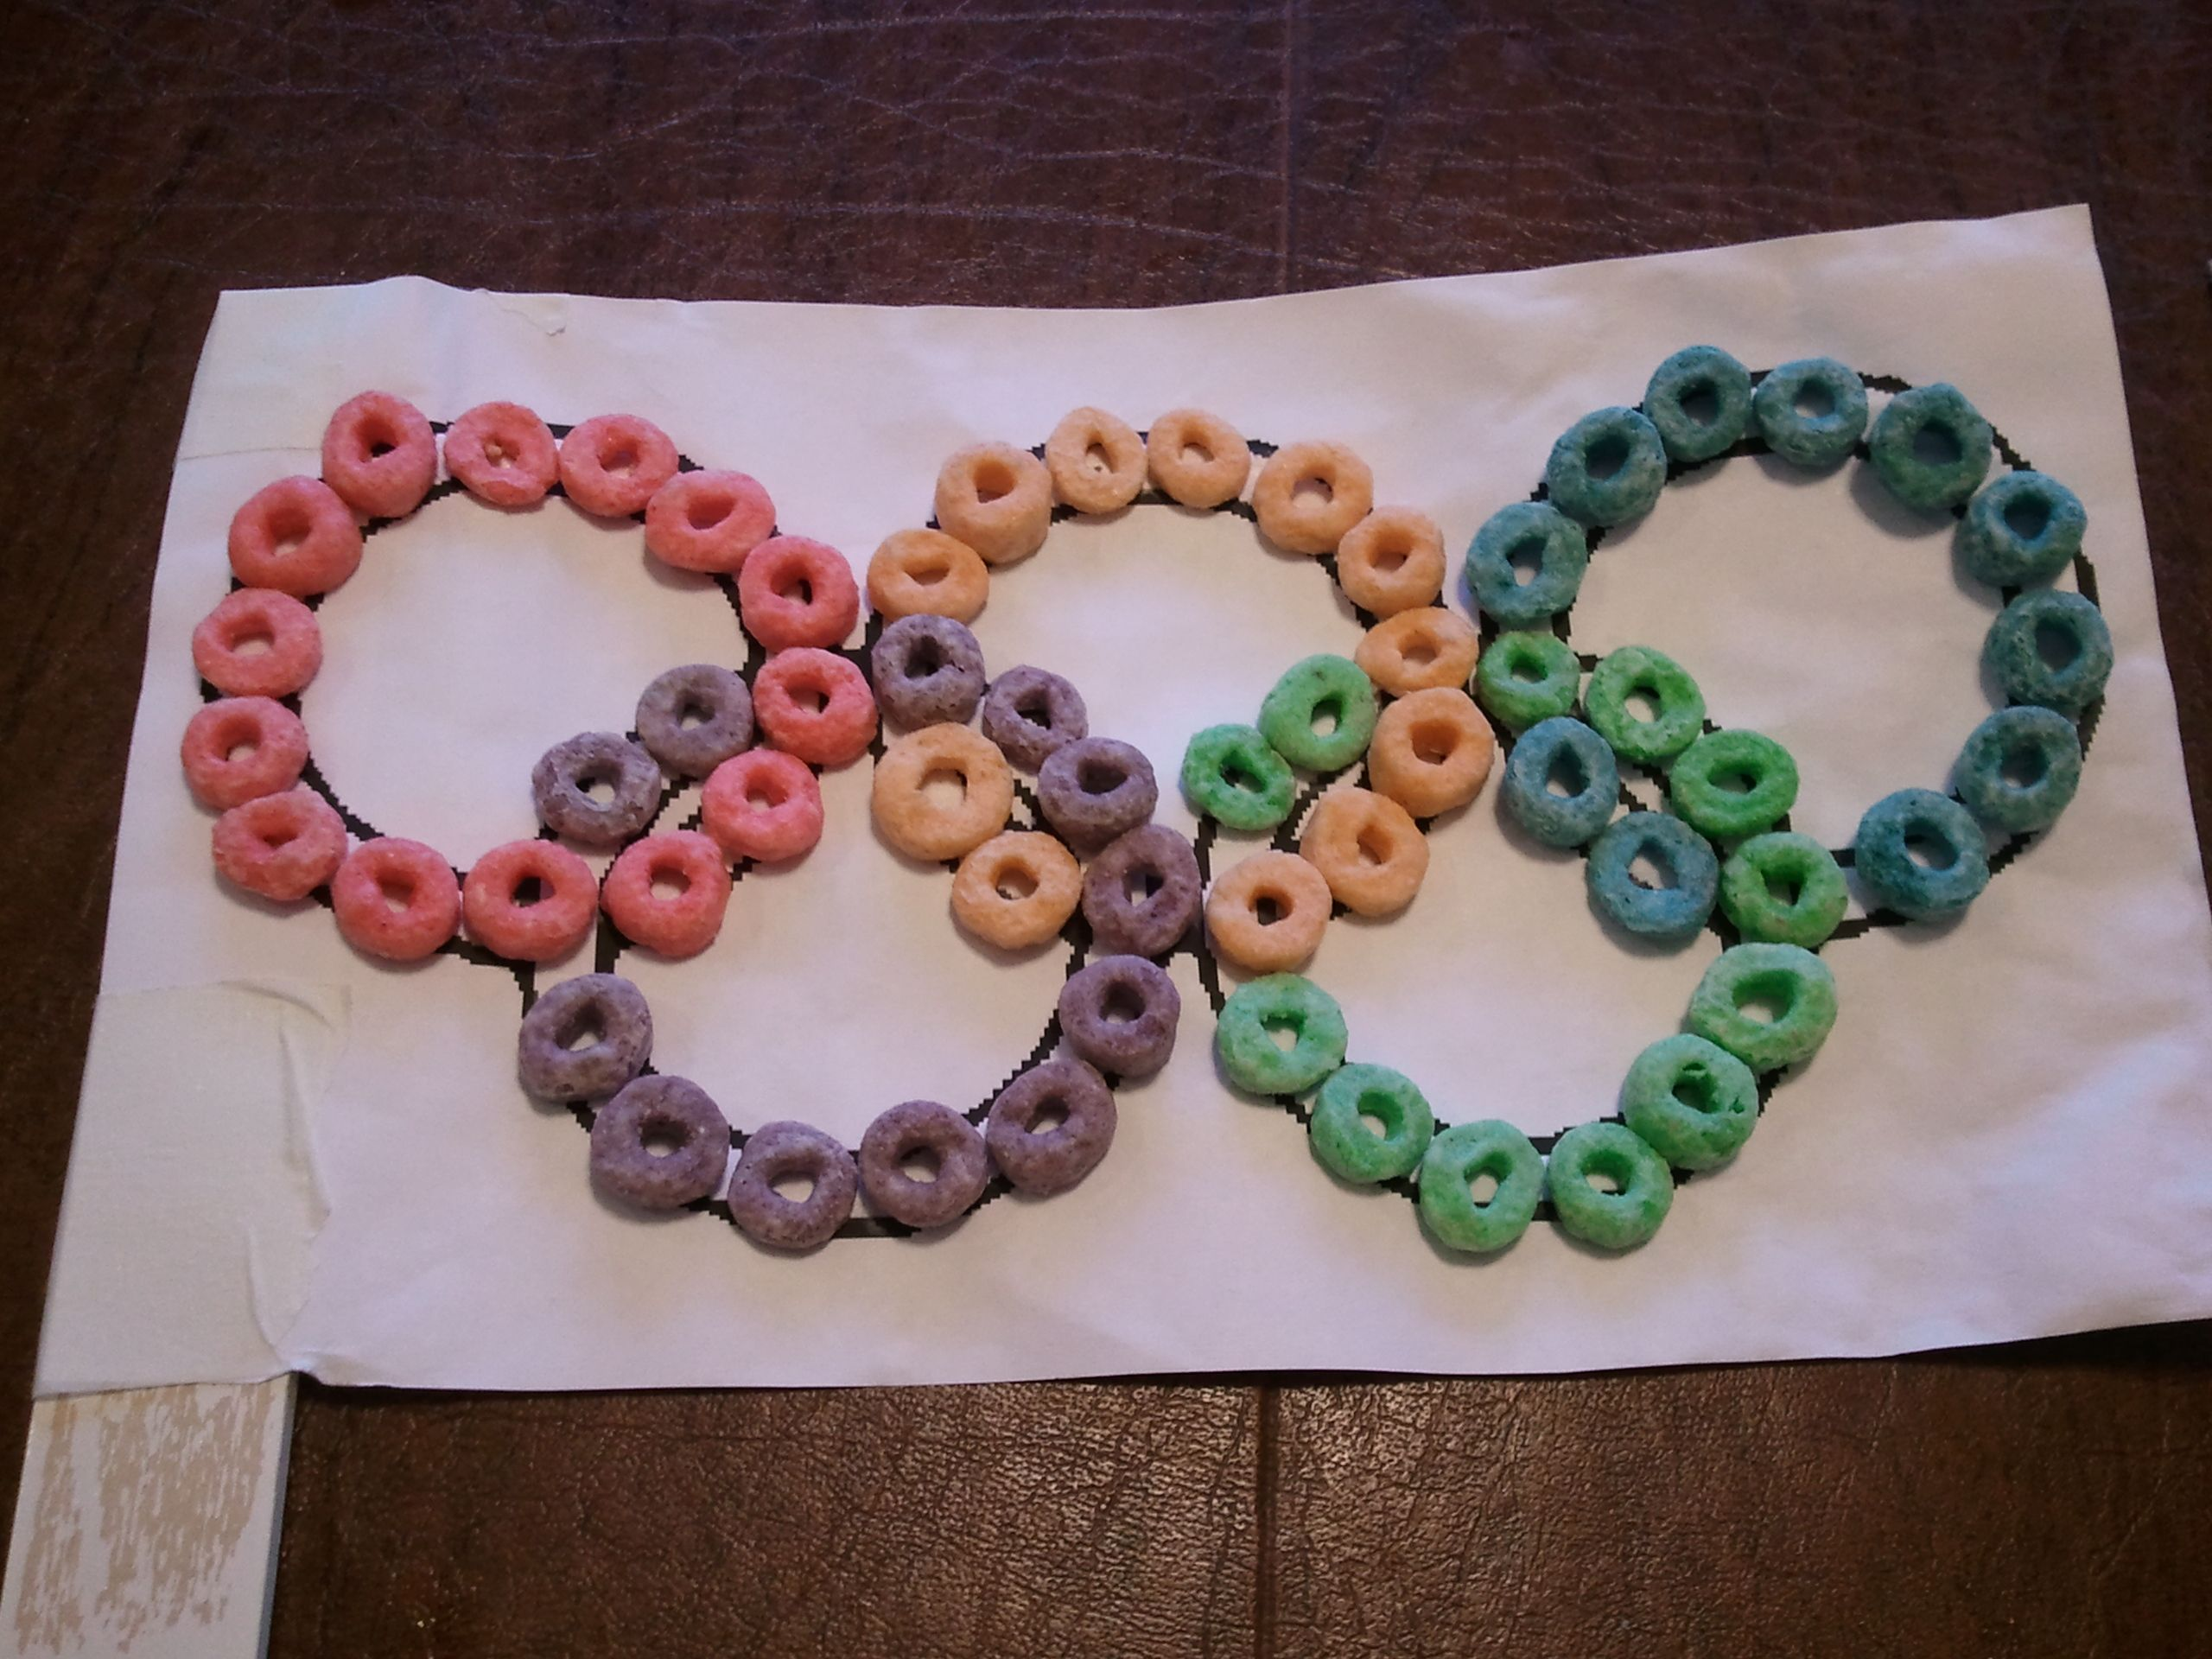 Olympic Rings Craft With Fruit Loops